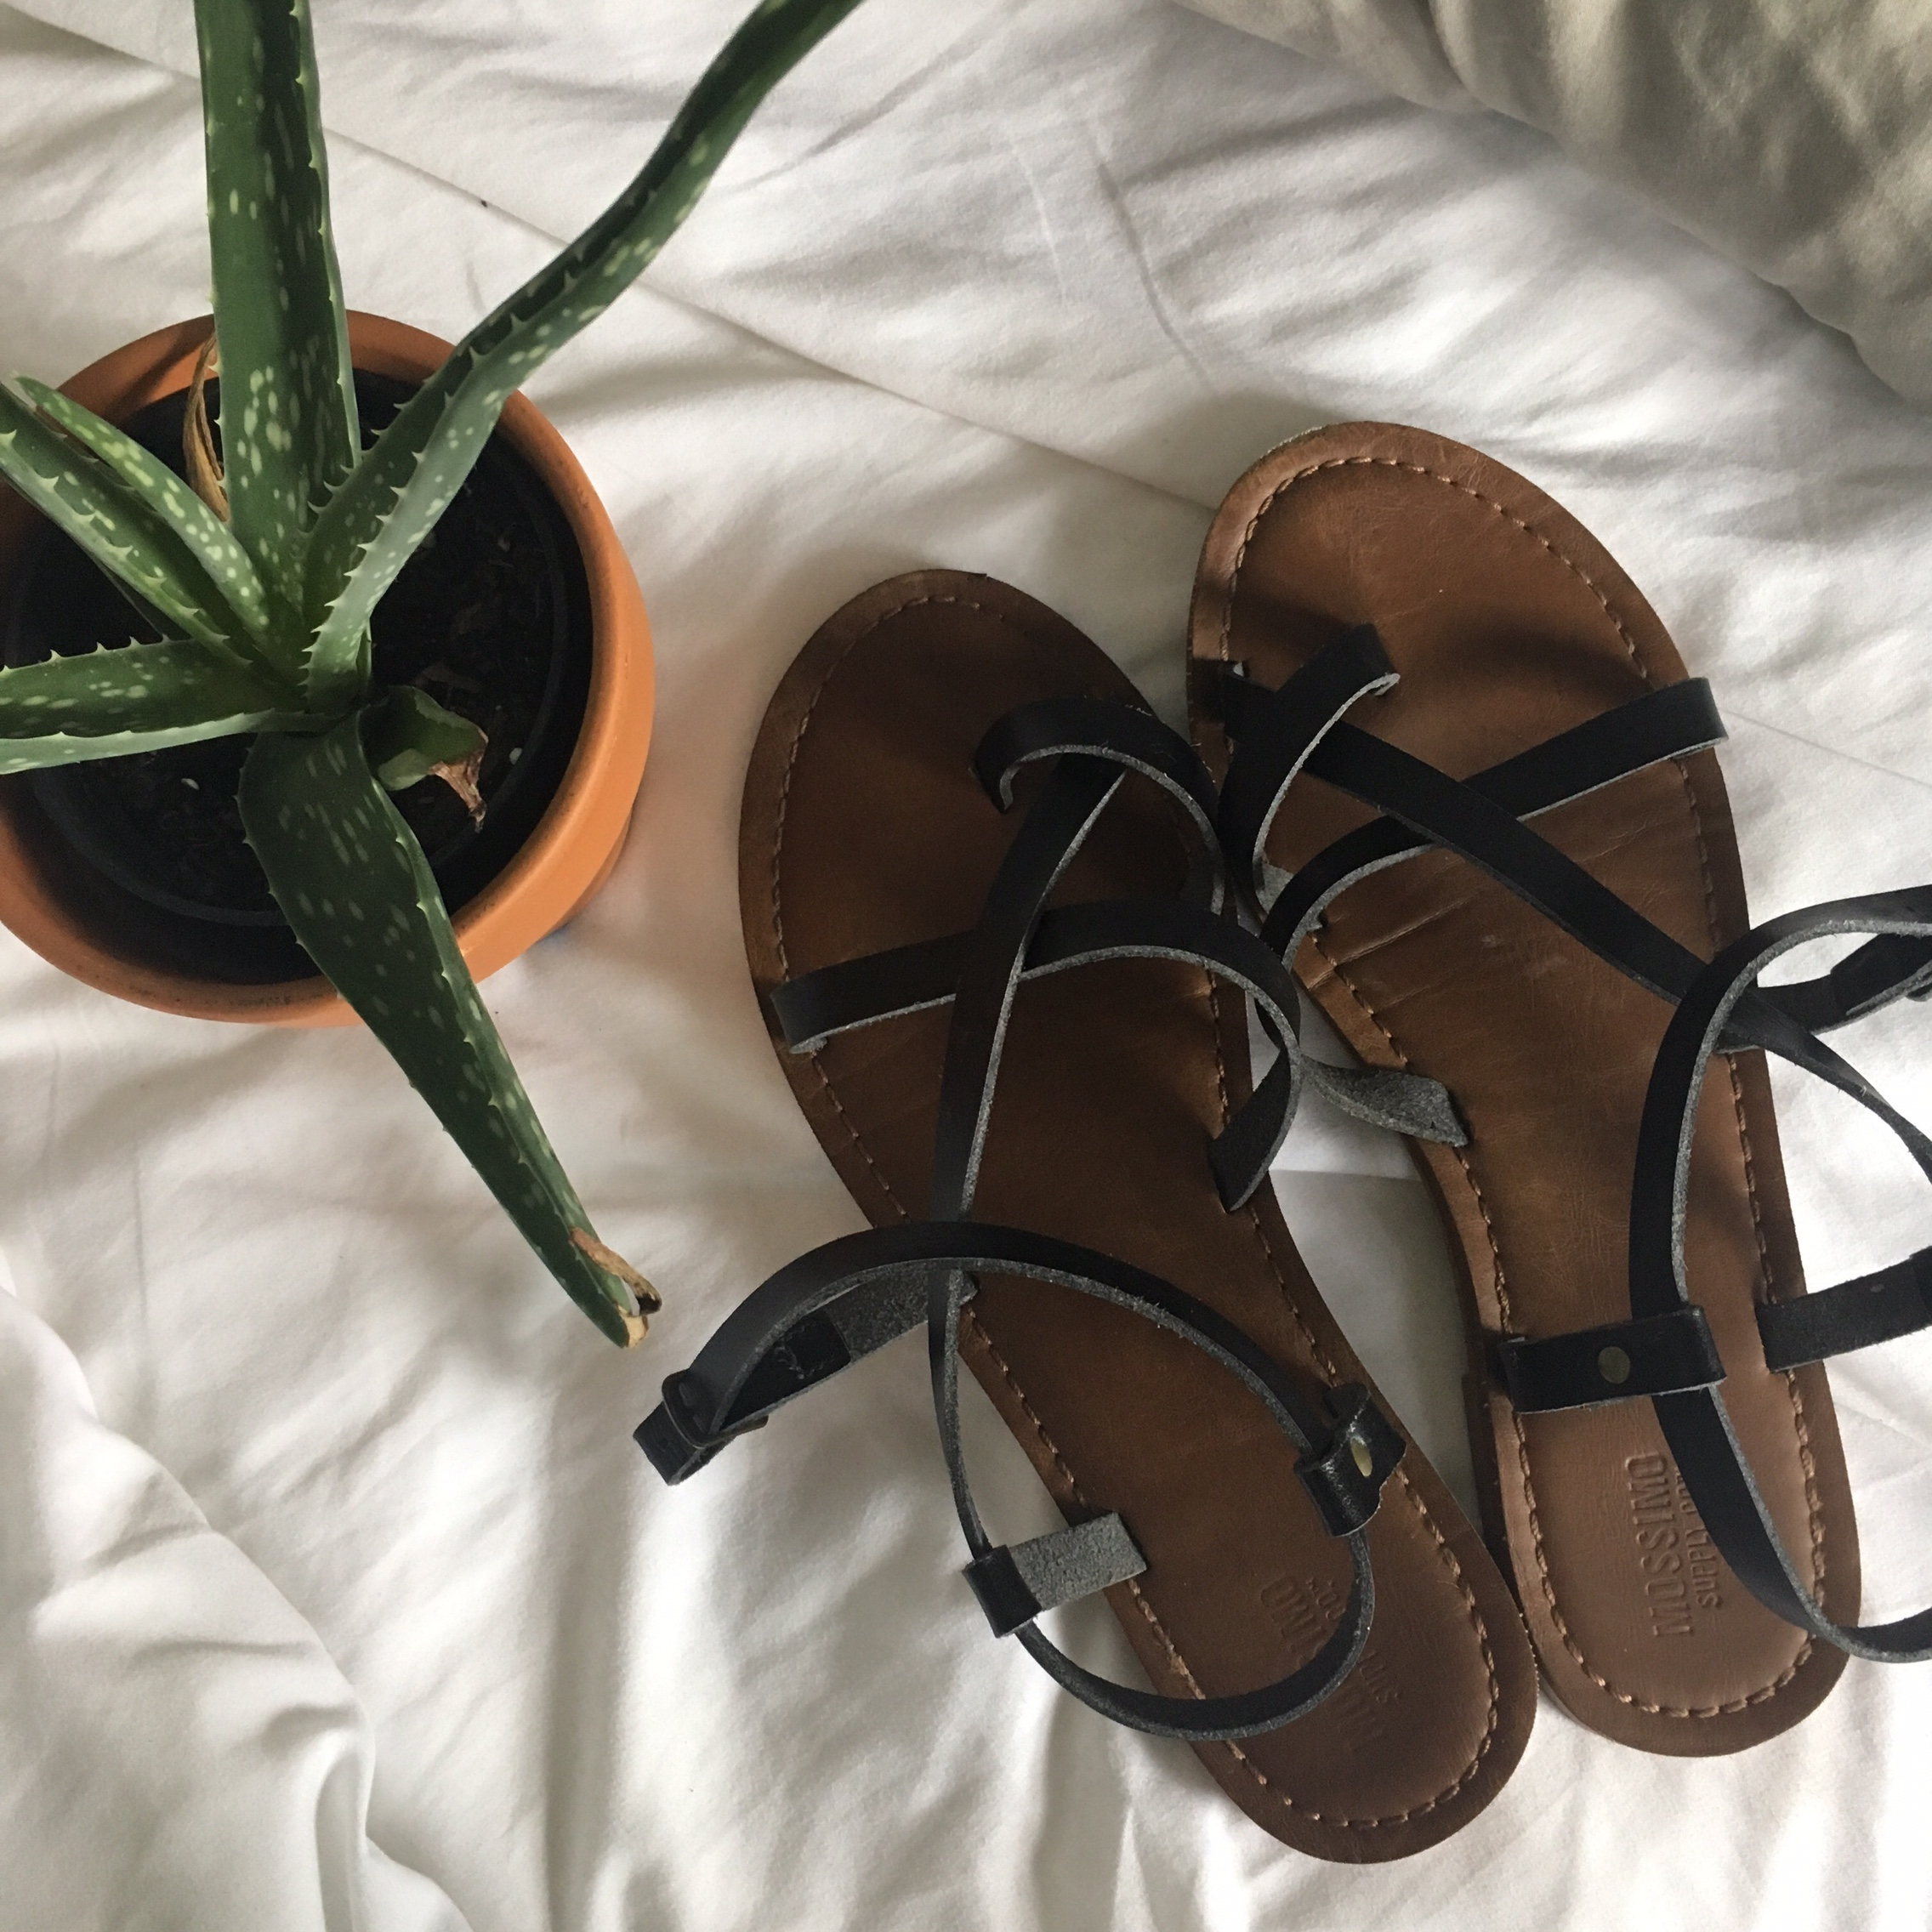 Target/ Mossimo supply co strappy